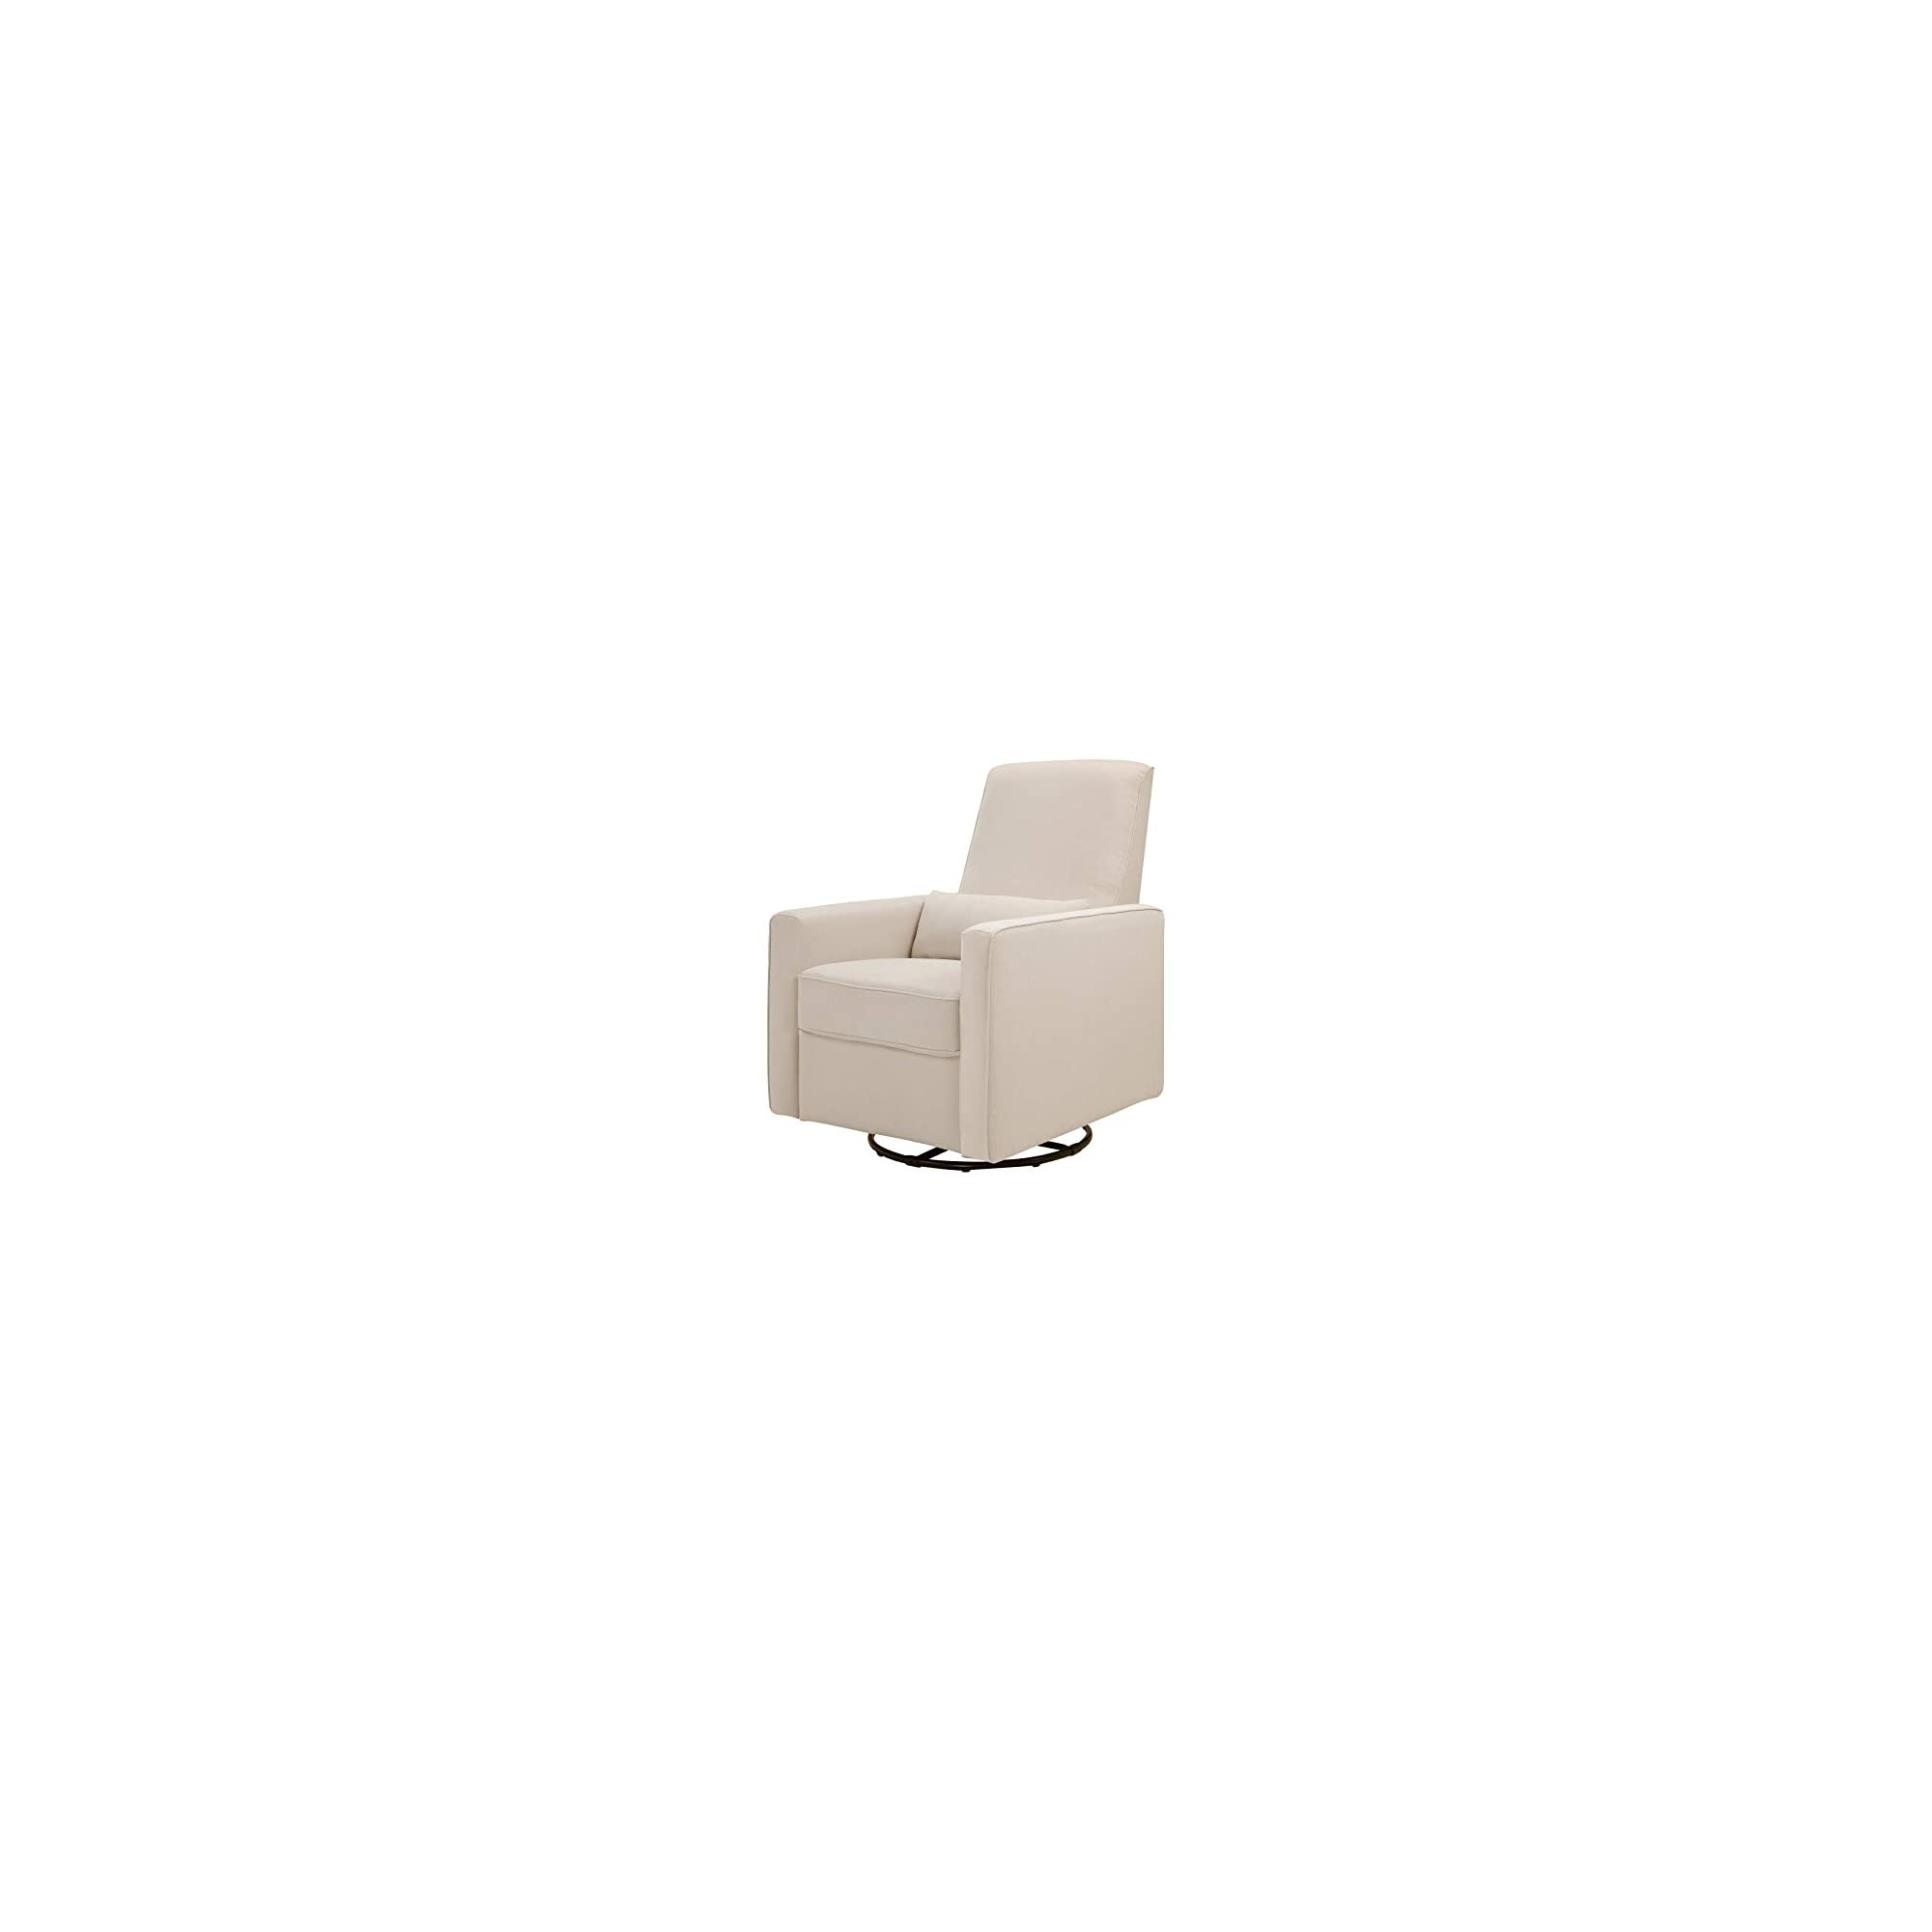 DaVinci Piper Upholstered Recliner and Swivel Glider in Cream, Greenguard Gold Certified